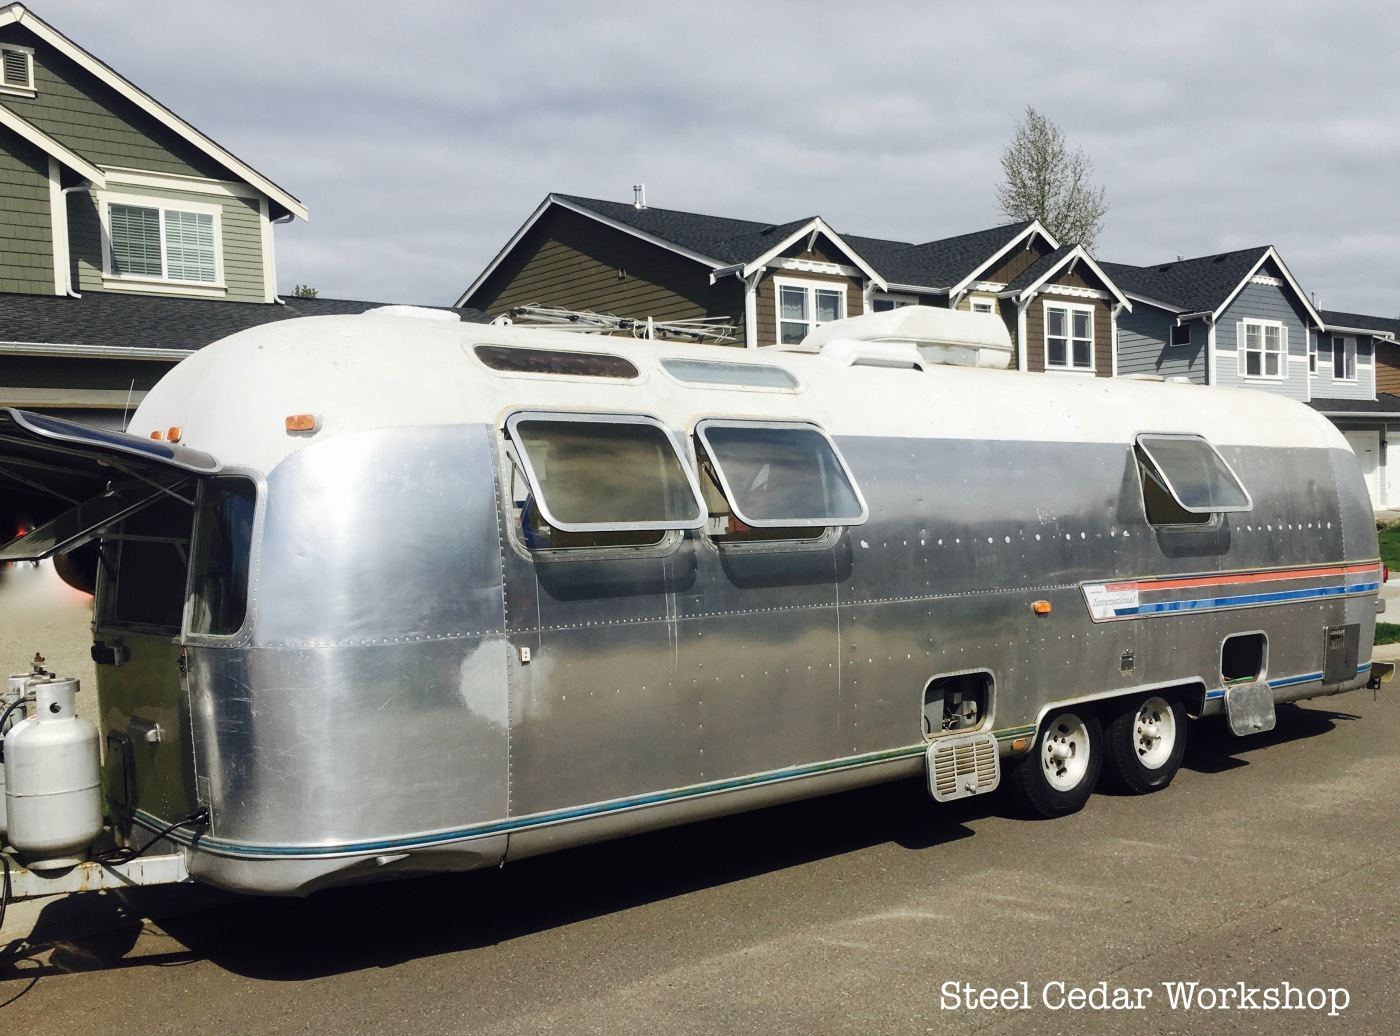 Important Resources You Need To Find + DIY A Vintage Airstream